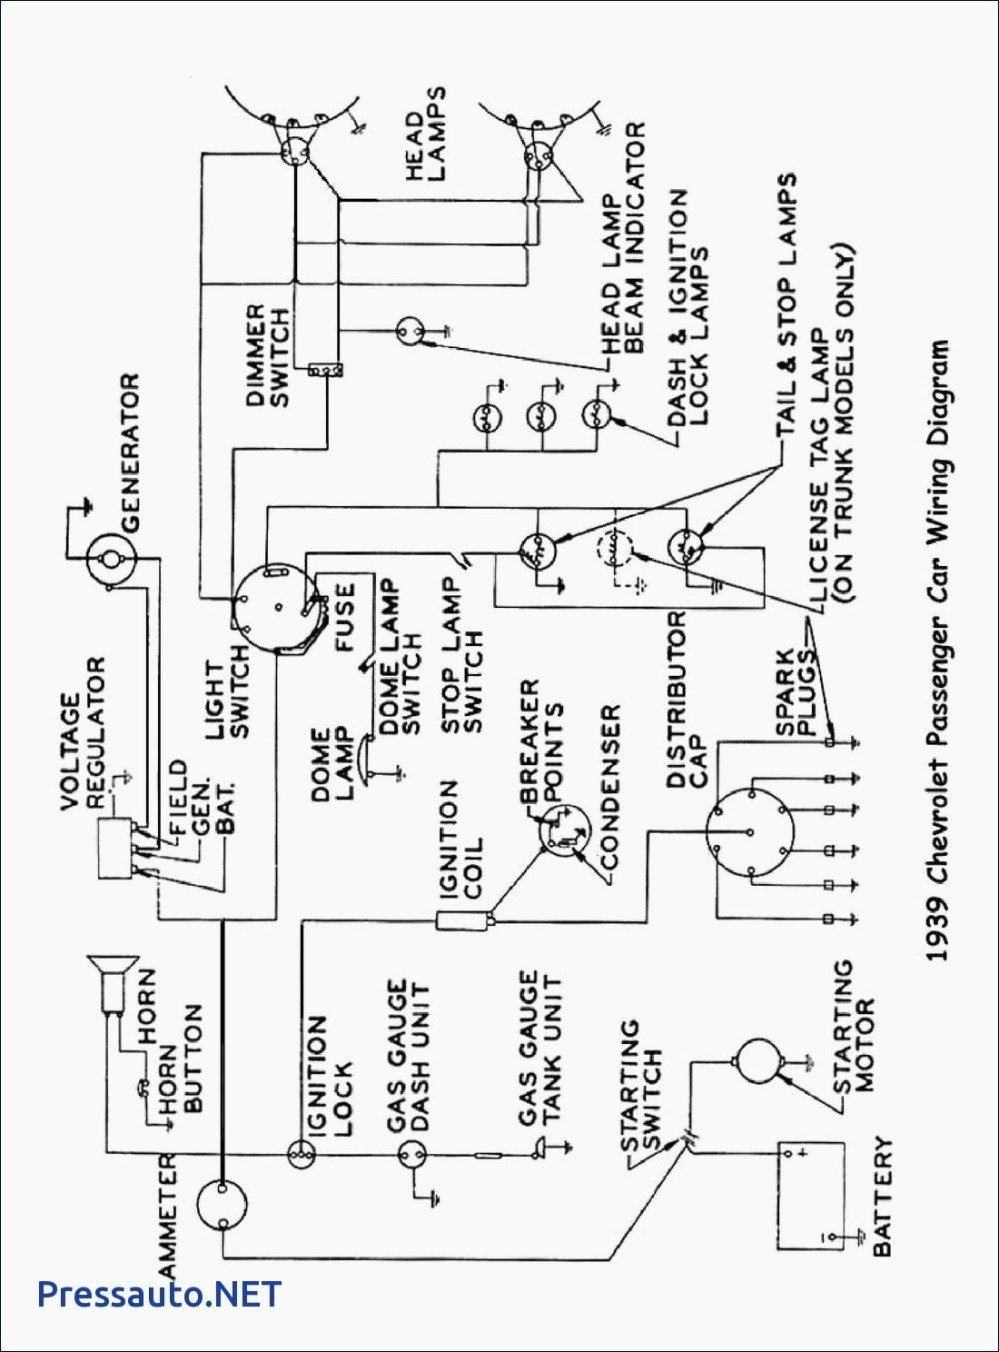 medium resolution of automotix wiring diagrams 1994 mitsubishi montero wiring diagramautomotix wiring diagrams 1994 mitsubishi montero best wiring libraryjohn